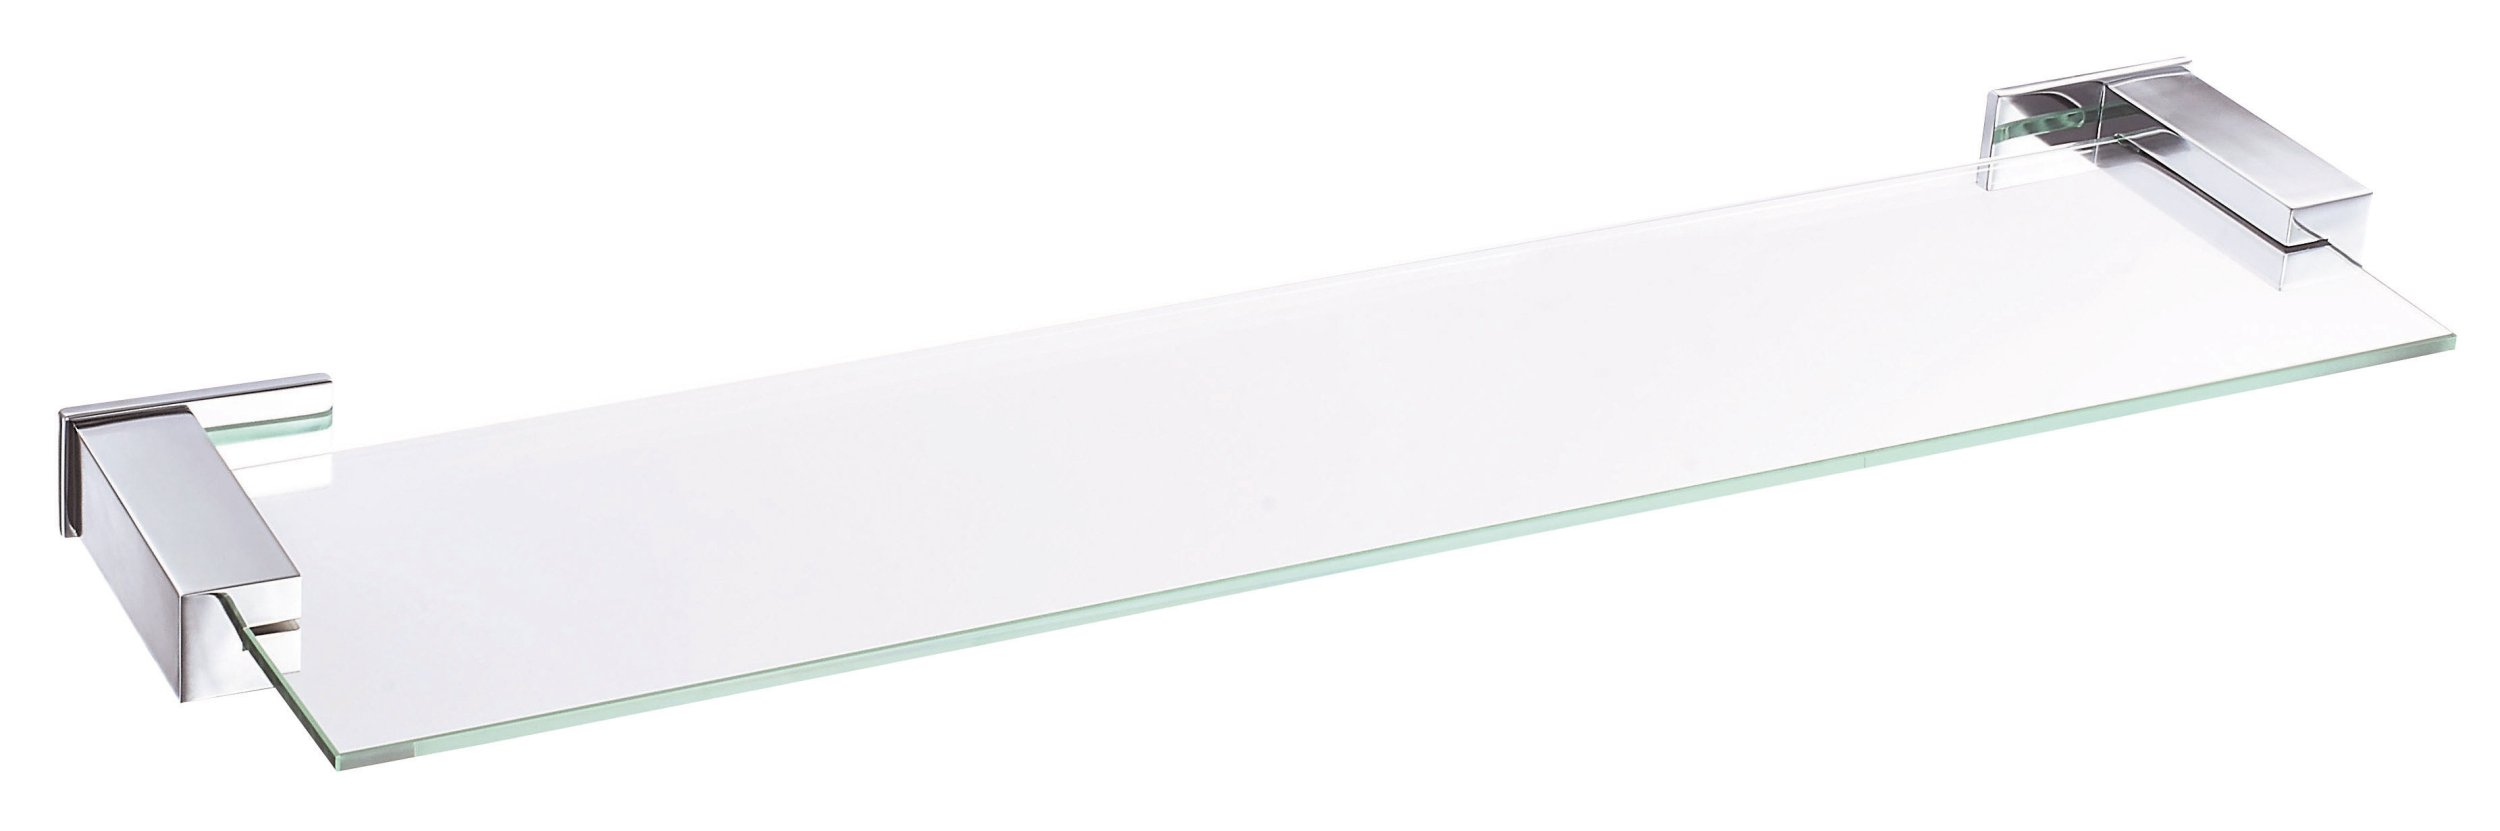 Danze D446135 Sirius Glass Shelf, 24-Inch, Chrome by Danze